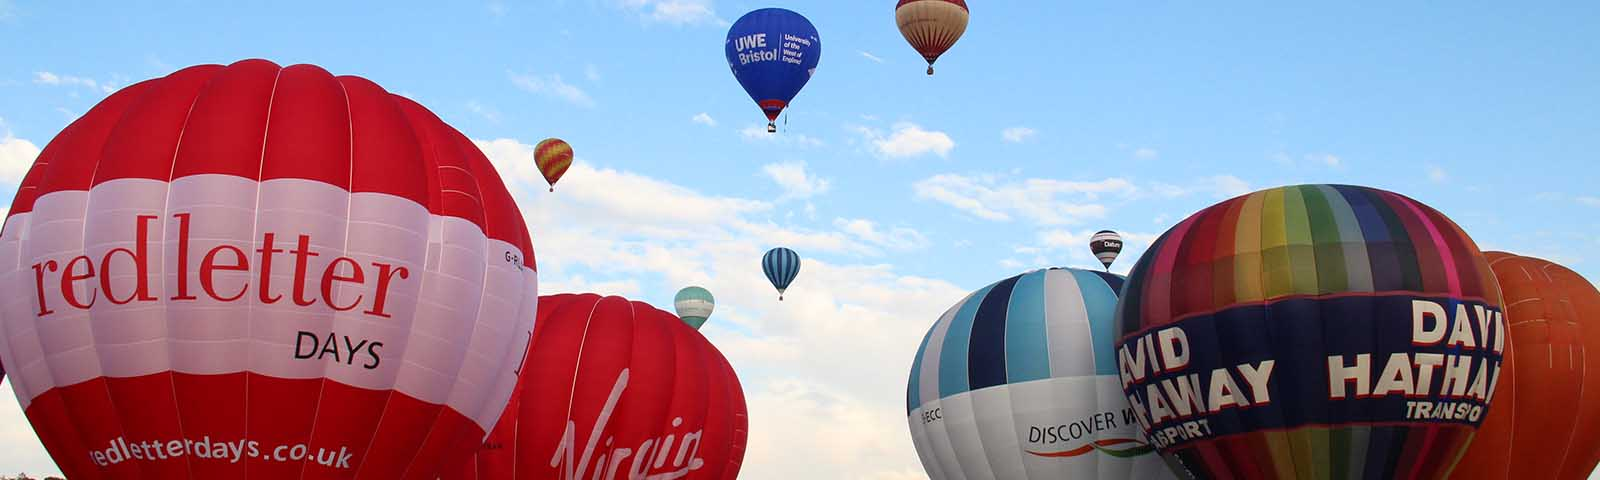 Bristol International Balloon Fiesta - Fonix LED